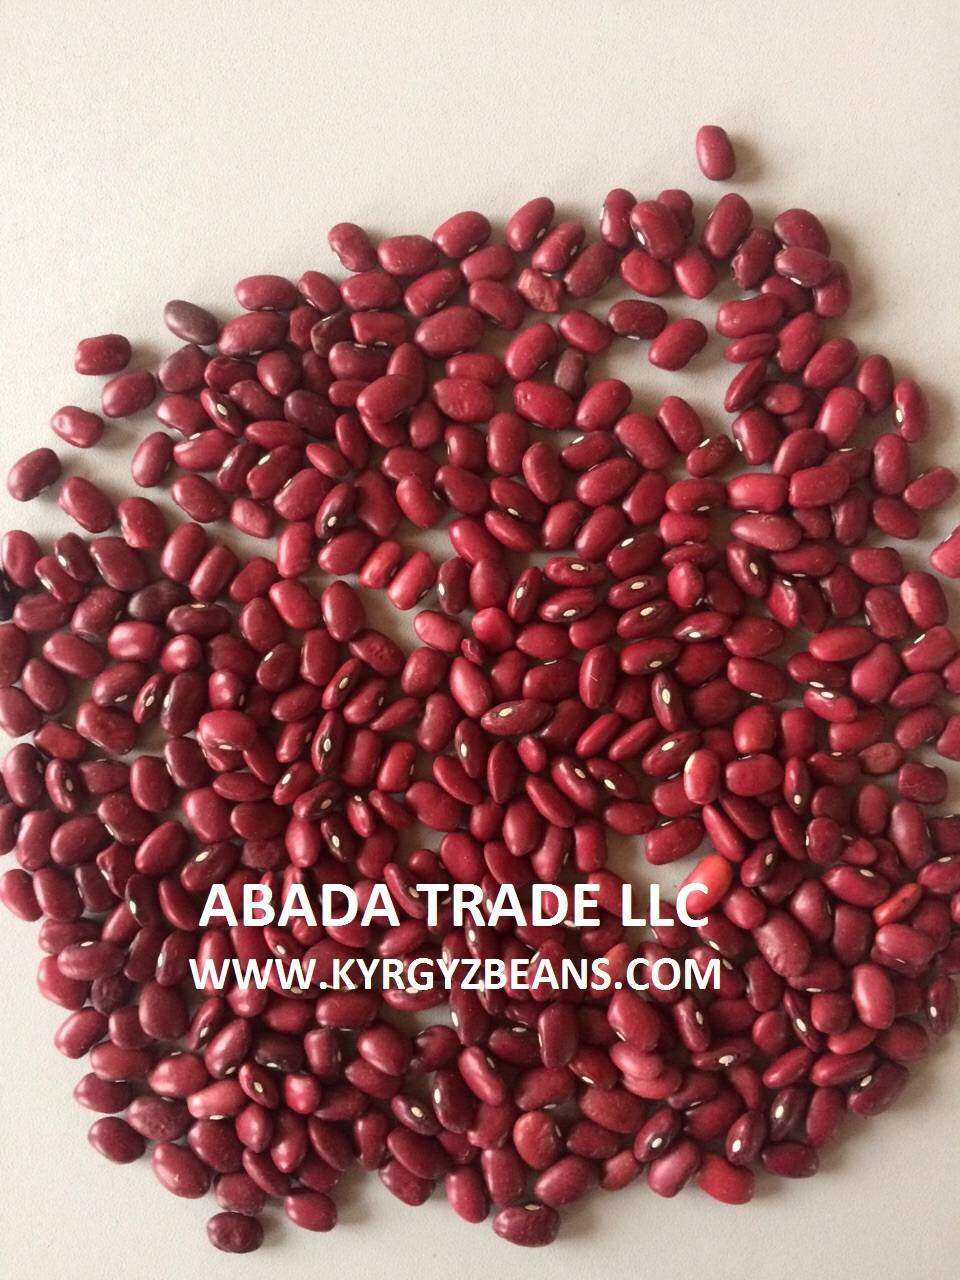 Red kidney beans of 2015 crop